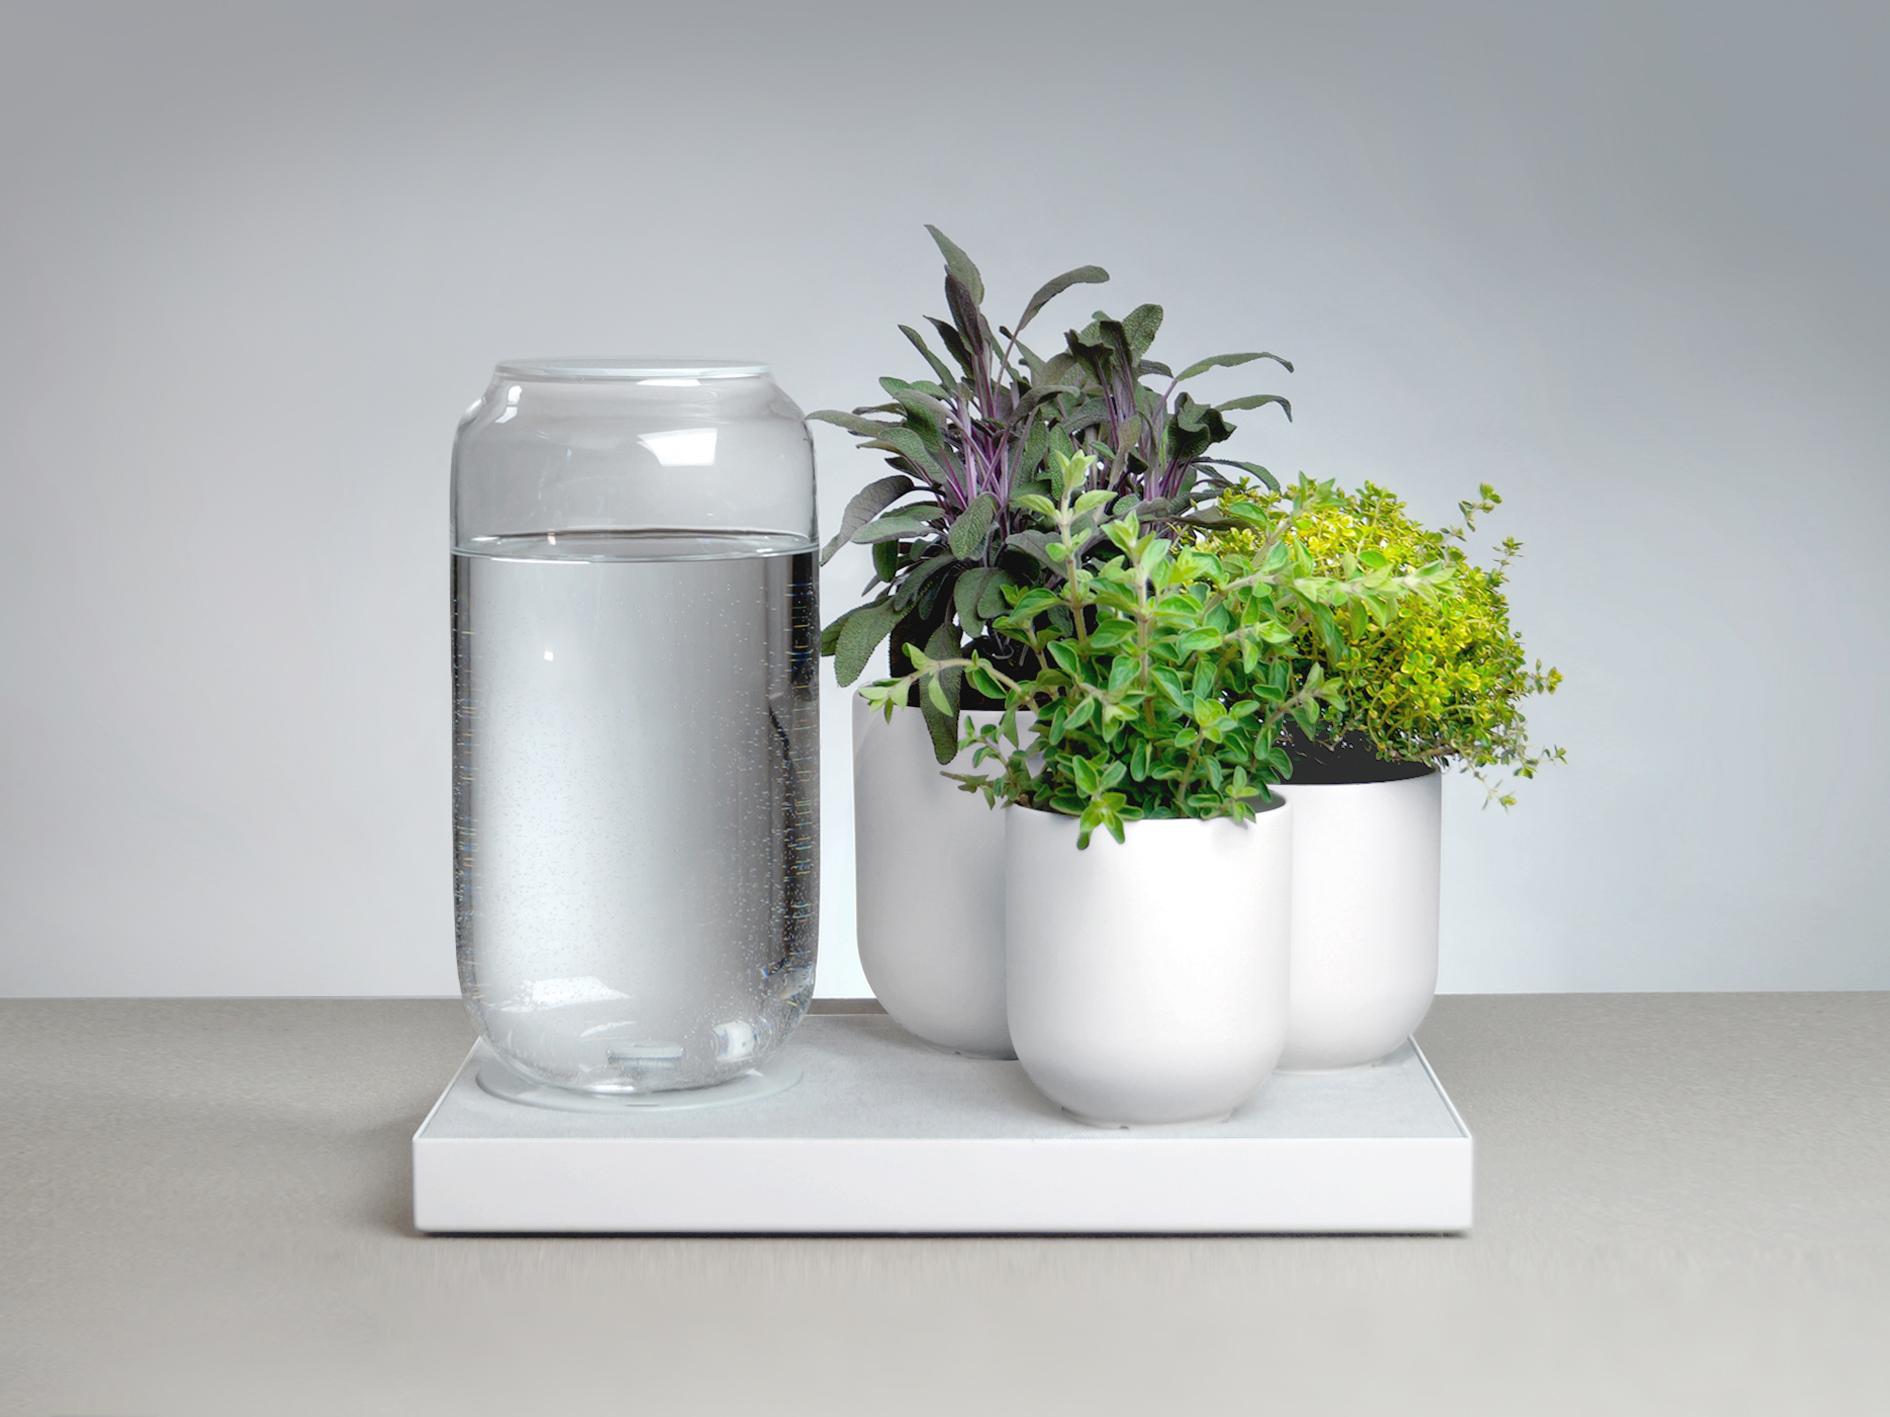 Tableau_Automatic_Houseplant_Watering_Tray_Pikaplant_White_01